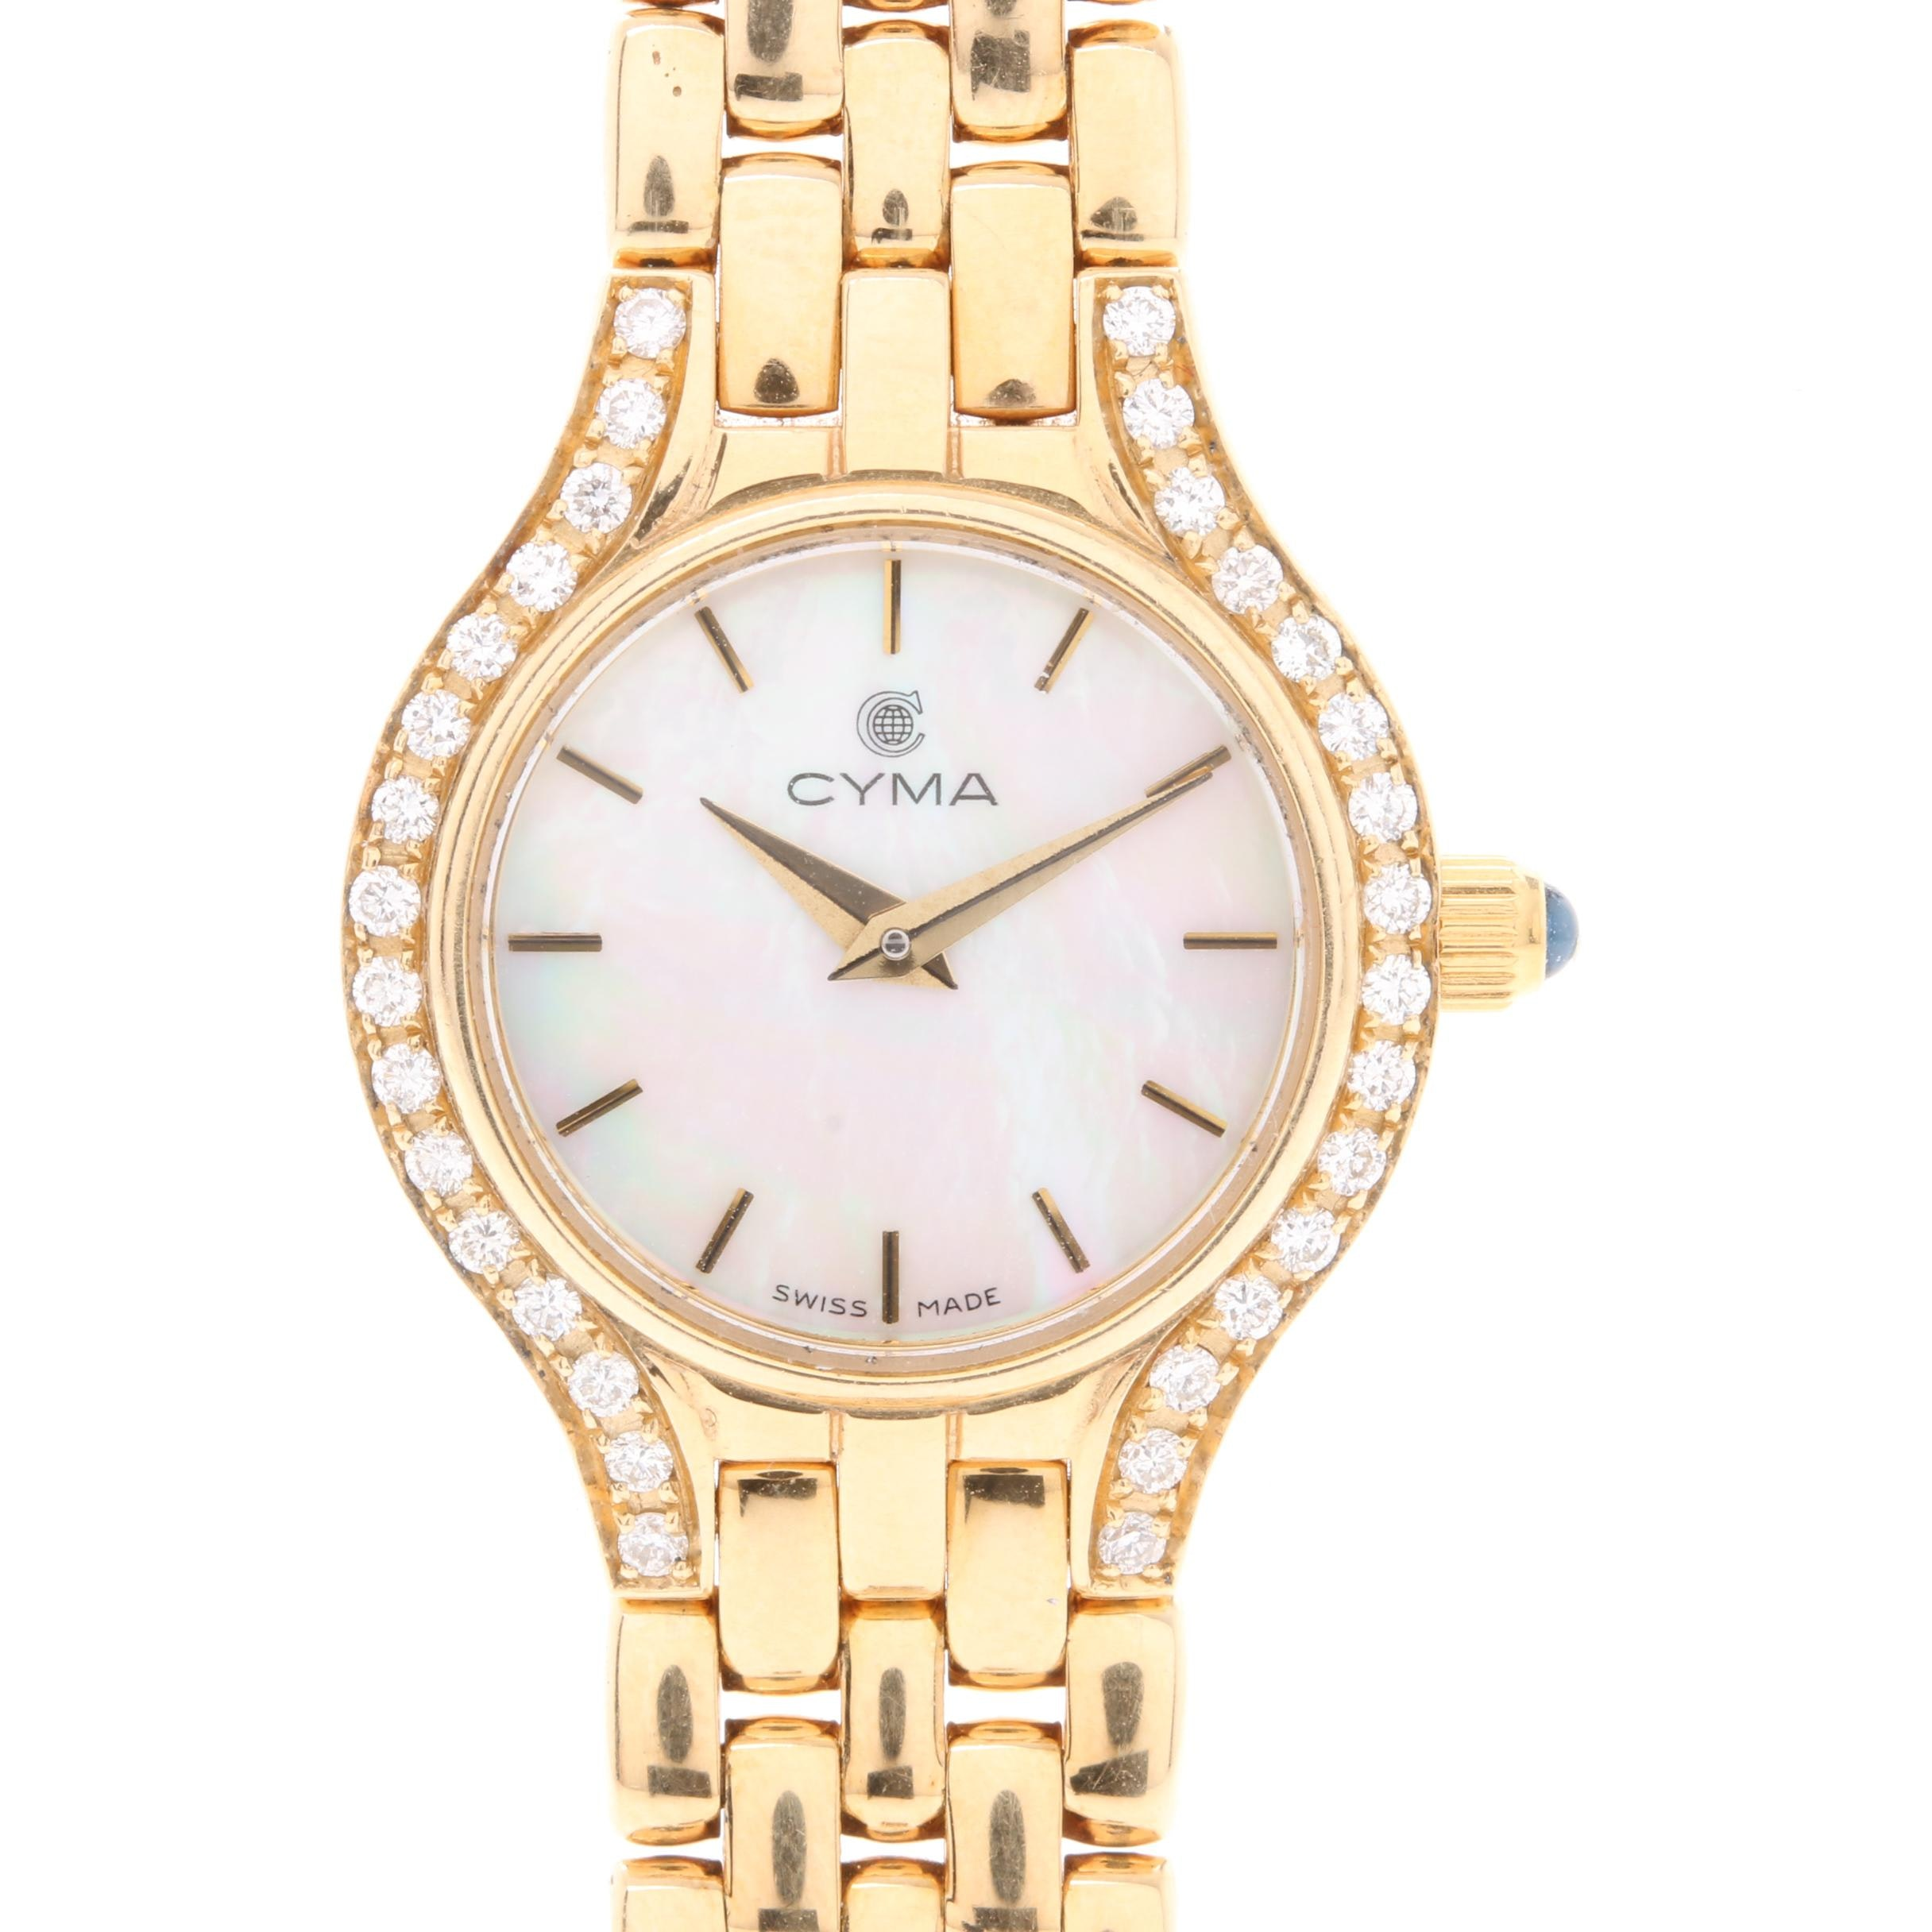 Cyma 14K Yellow Gold Mother of Pearl and Diamond Wristwatch